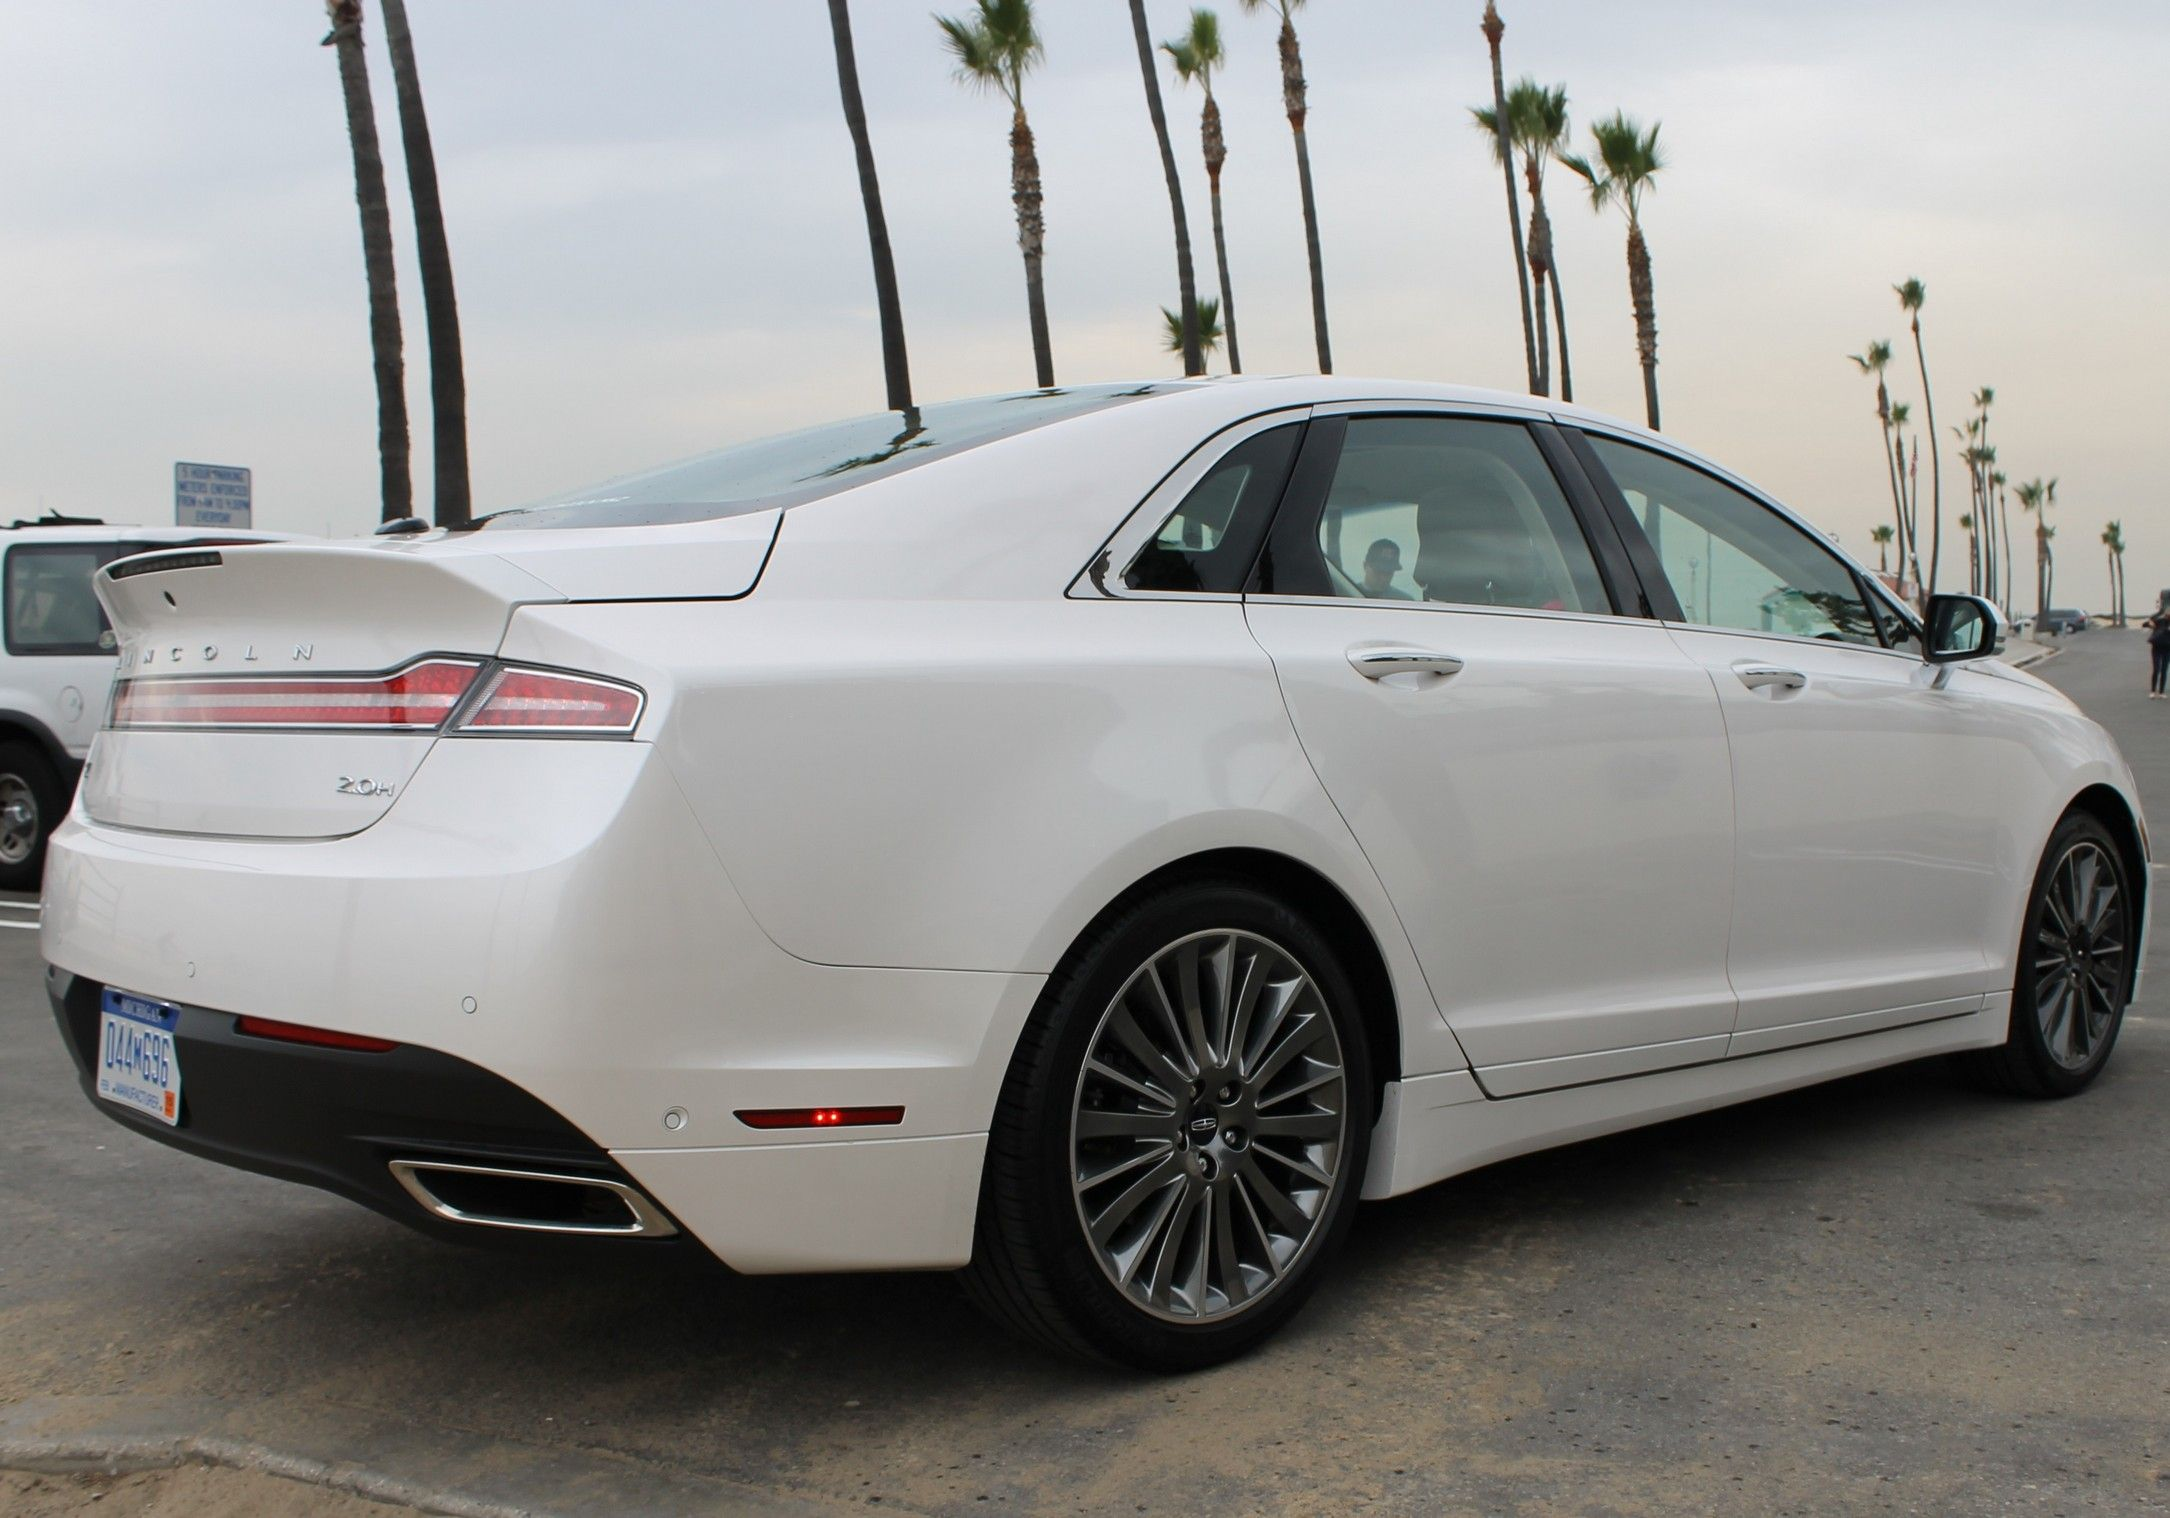 2013 Lincoln Mkz Hybrid White Lincoln Mkz Lincoln Cars Lincoln